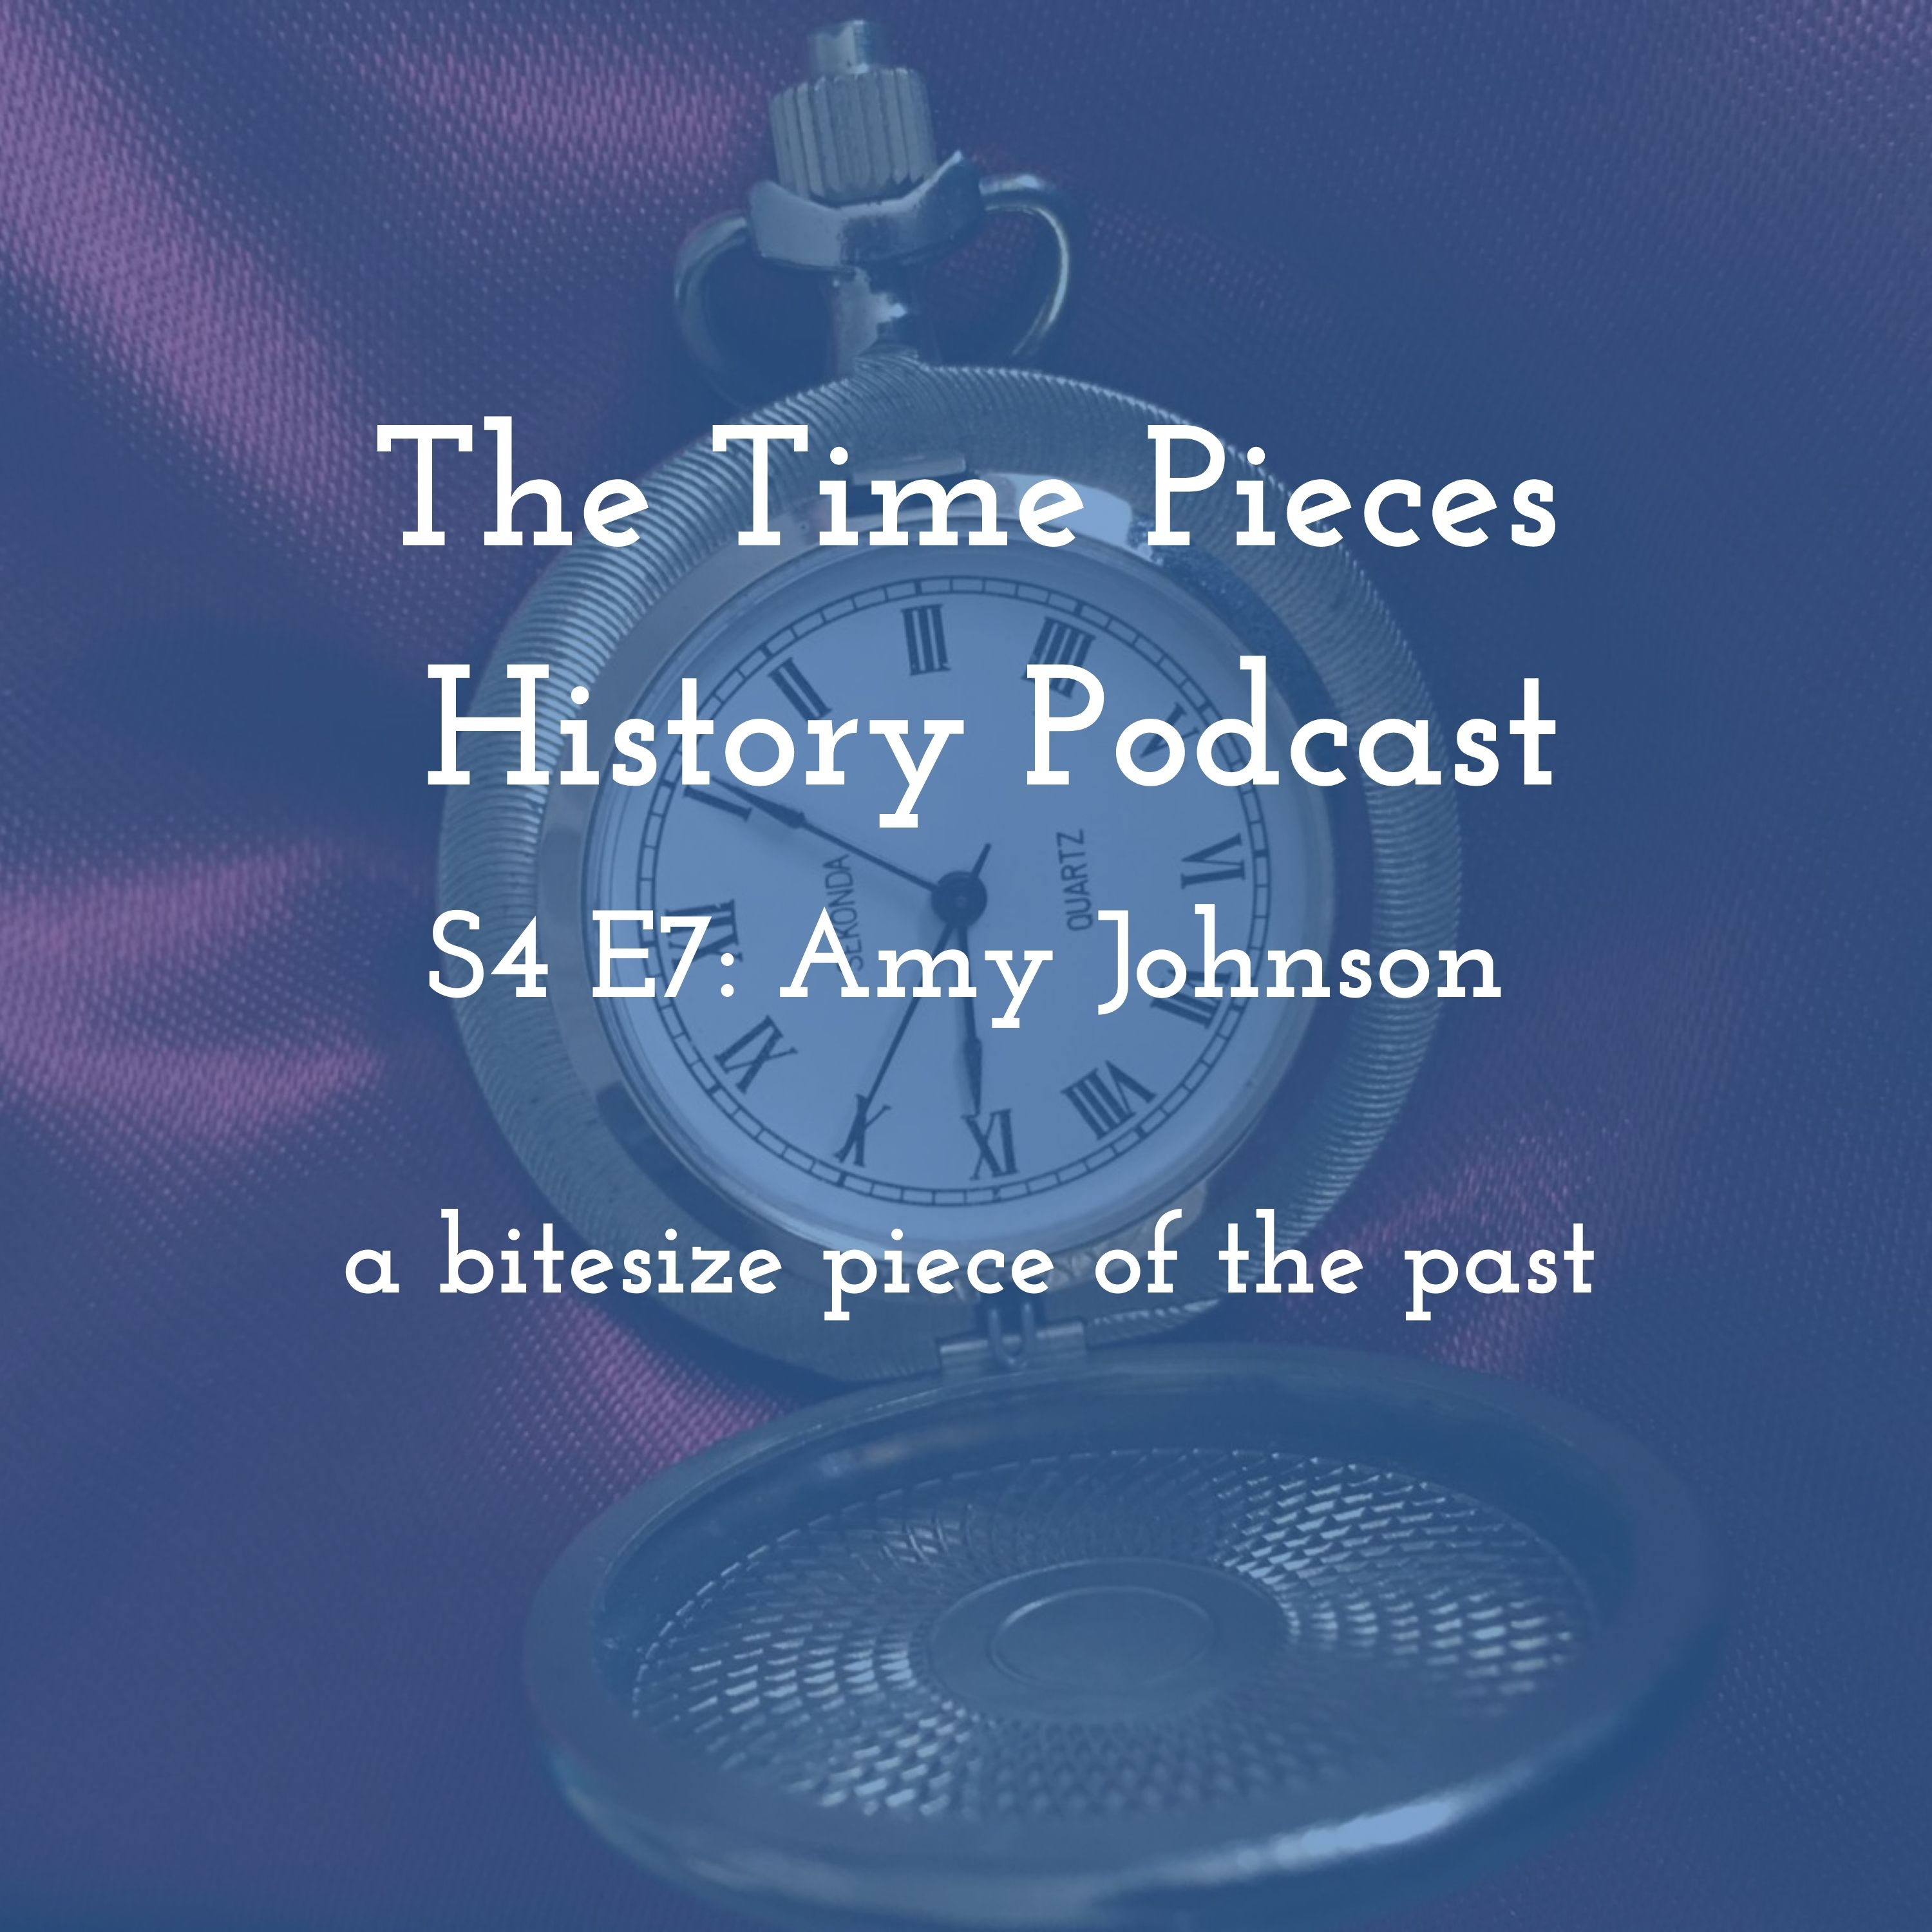 Artwork for podcast Time Pieces History